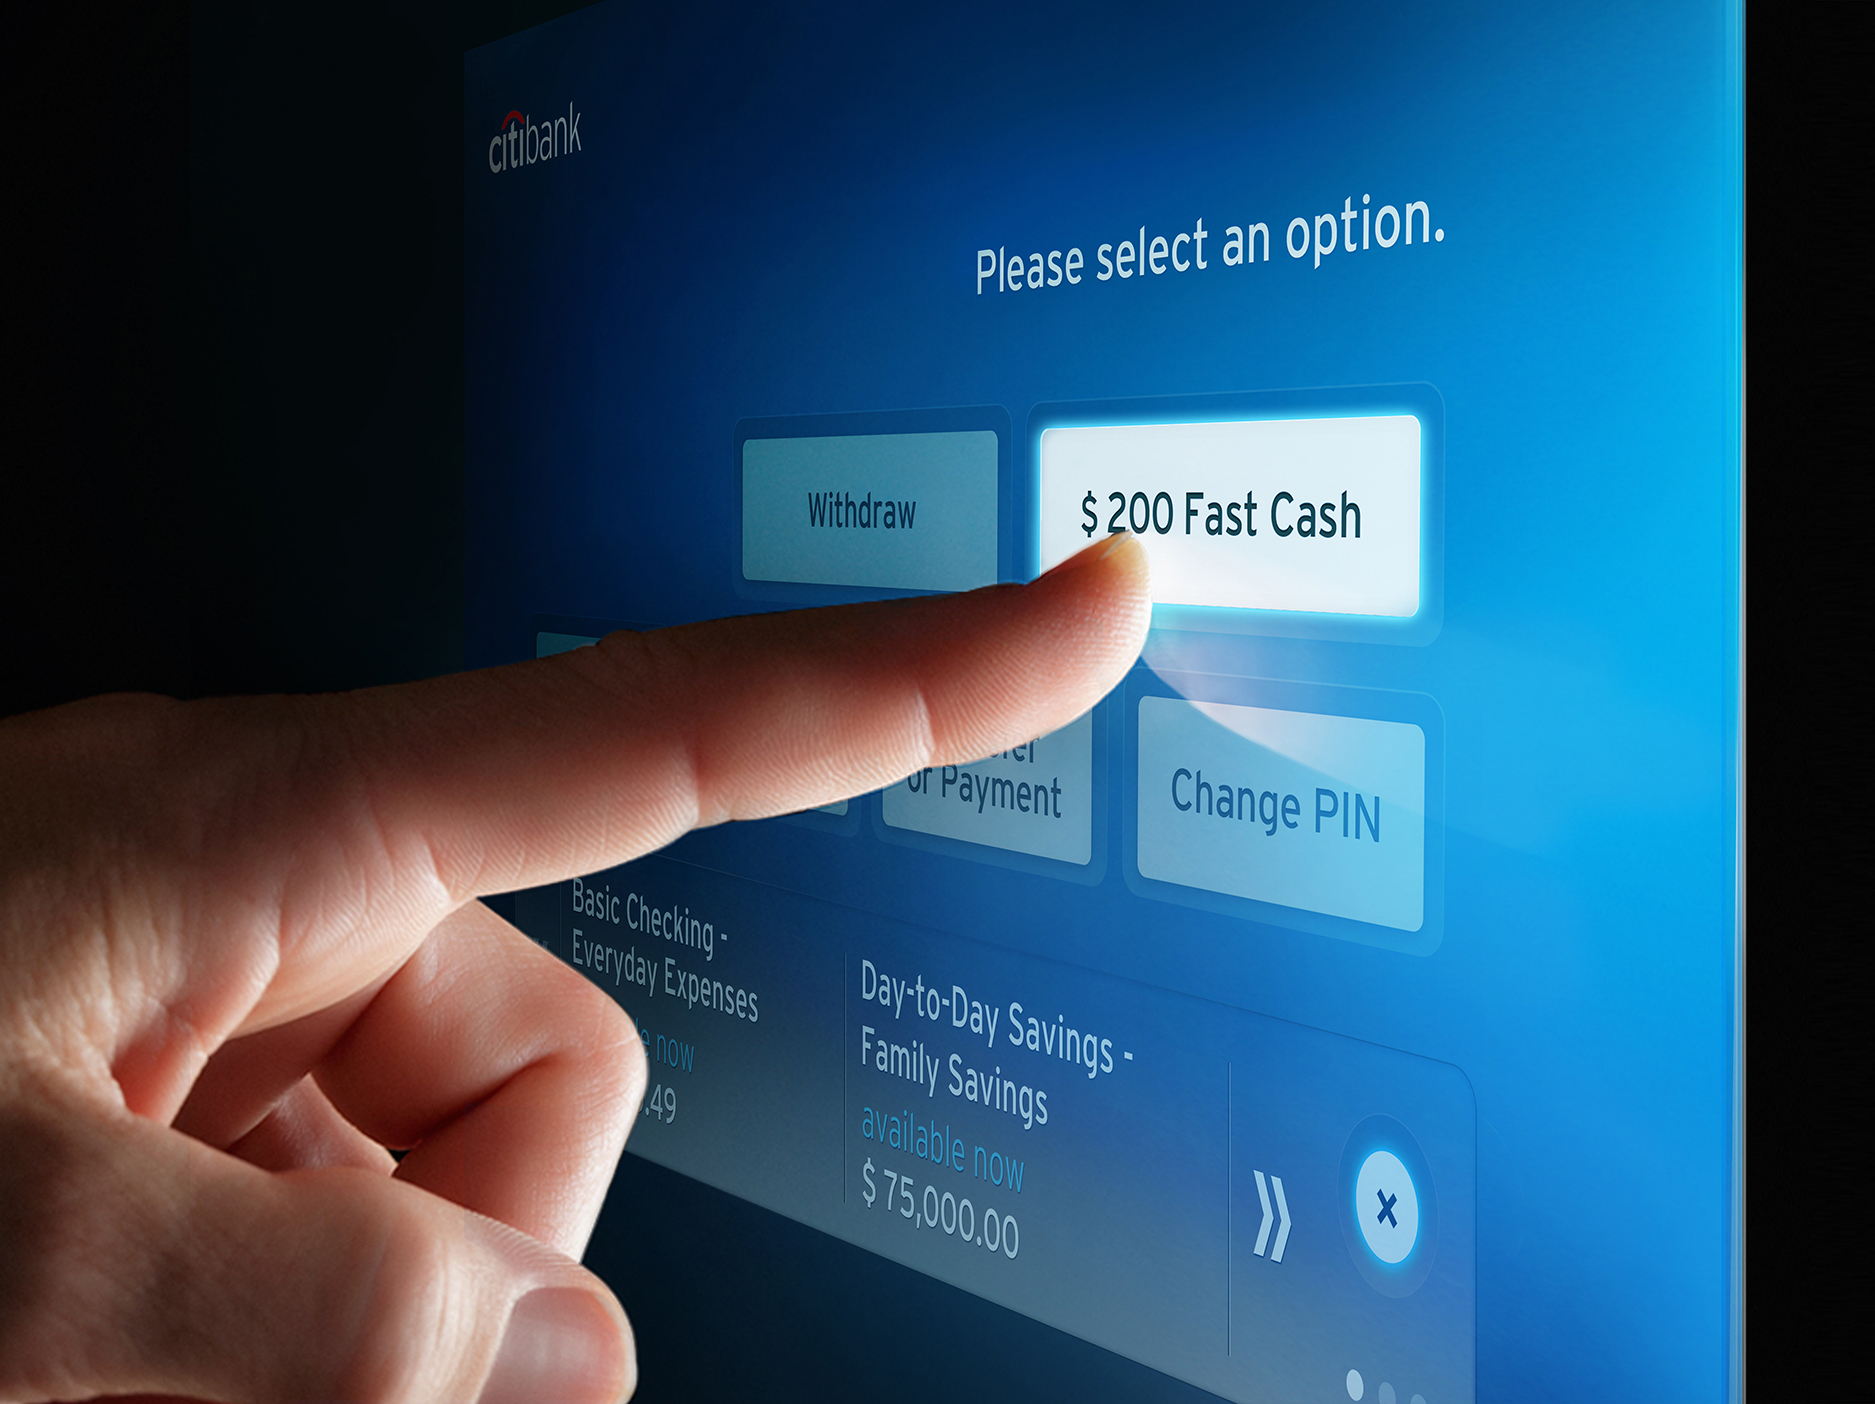 Citibank unveils a new, simplified ATM experience across the U.S., including a Quick-Touch Balance Peek feature. (Photo: Business Wire)